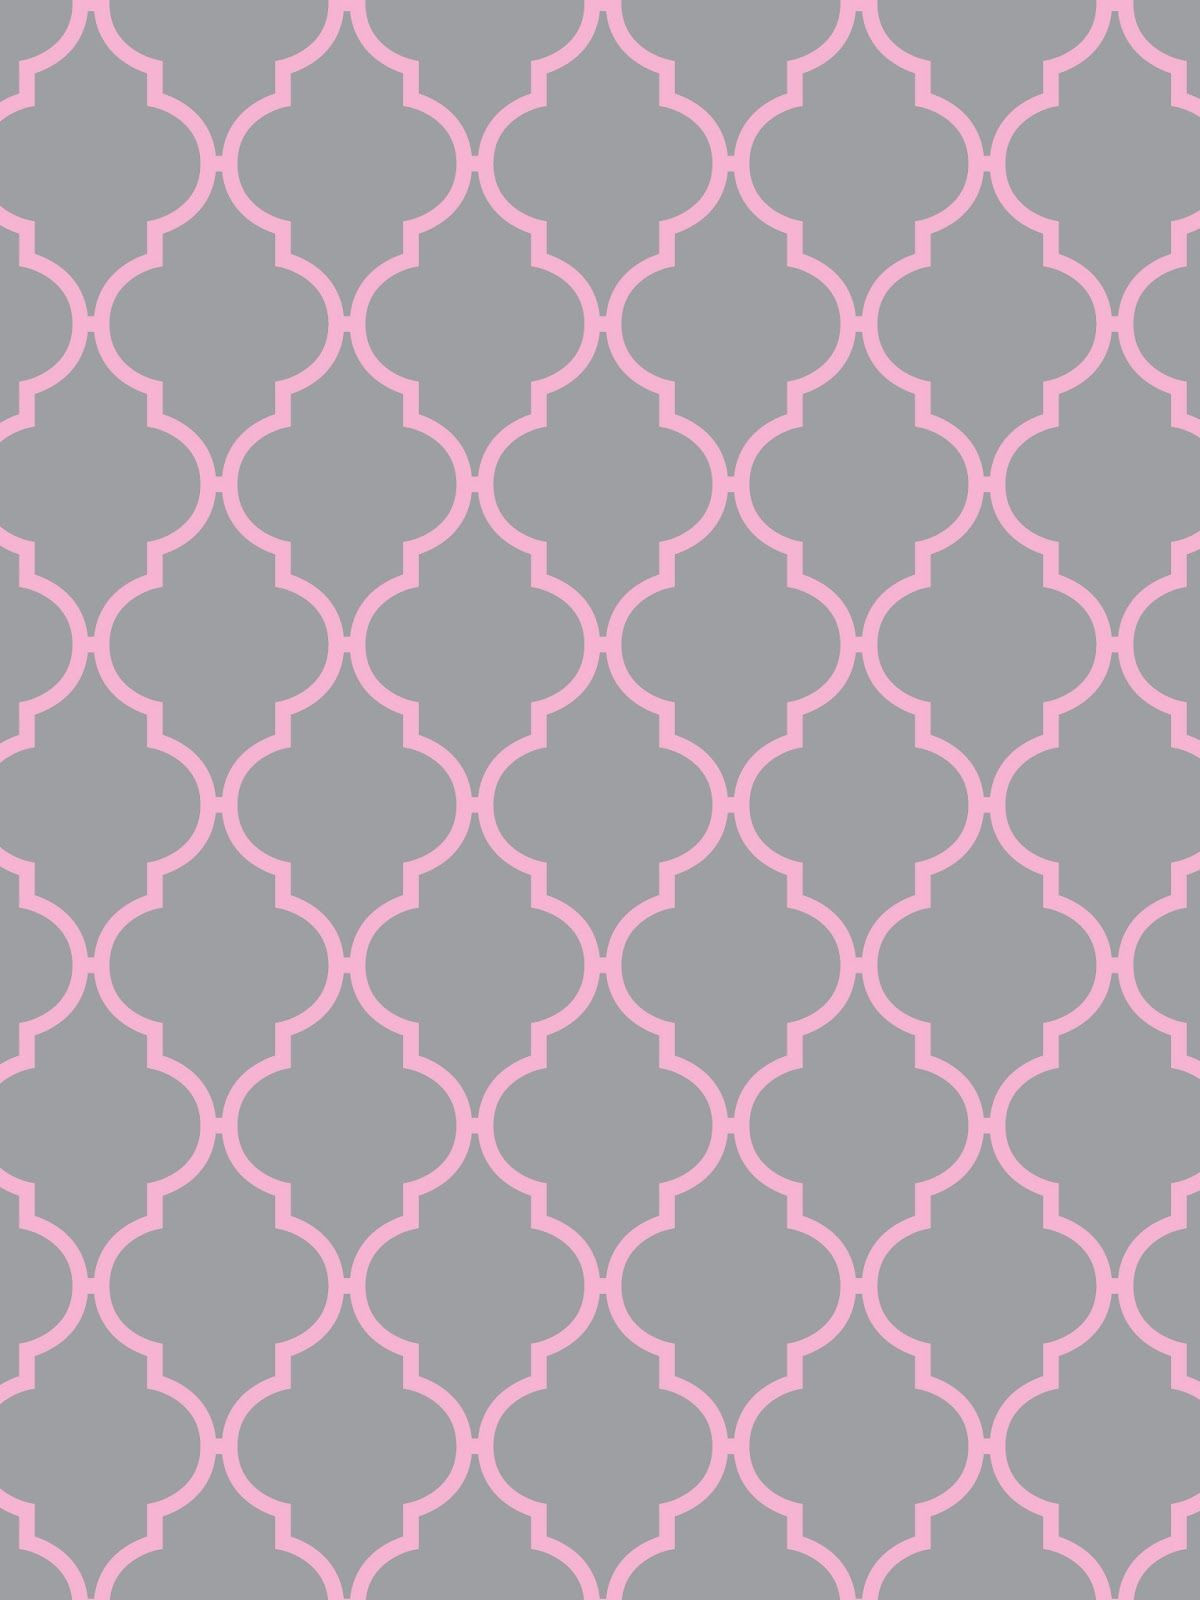 make itcreateprintables  backgroundswallpapers quatrefoil  - quatrefoil wallpaper for iphone  ipad light gray with yellow aqua pinkor white each color is available for iphone and ipad